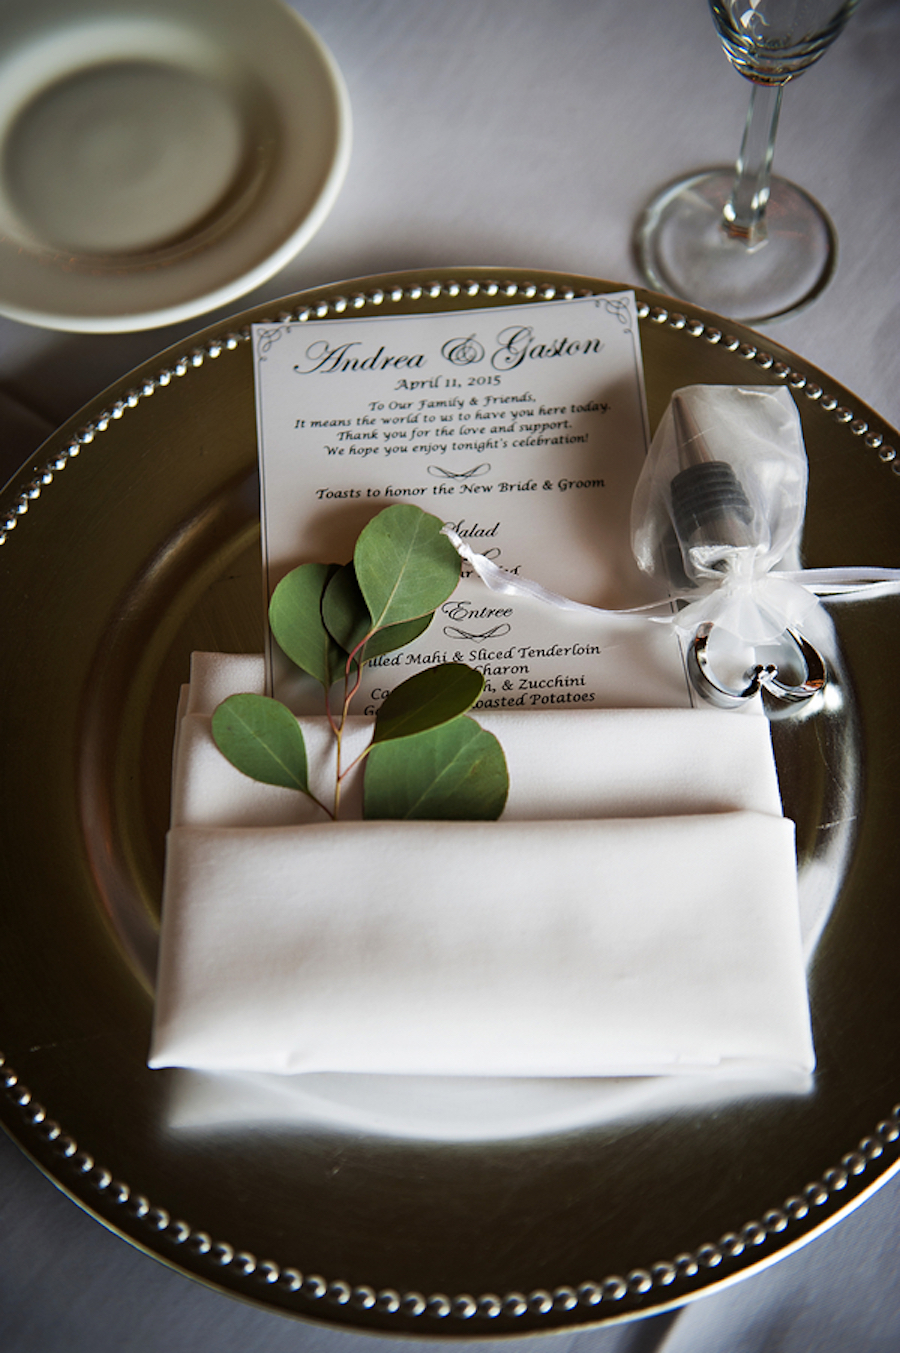 Tuscany Inspired Wedding Reception Silver Charger Place Setting with Menu, Wine Stopper Favor and Greenery